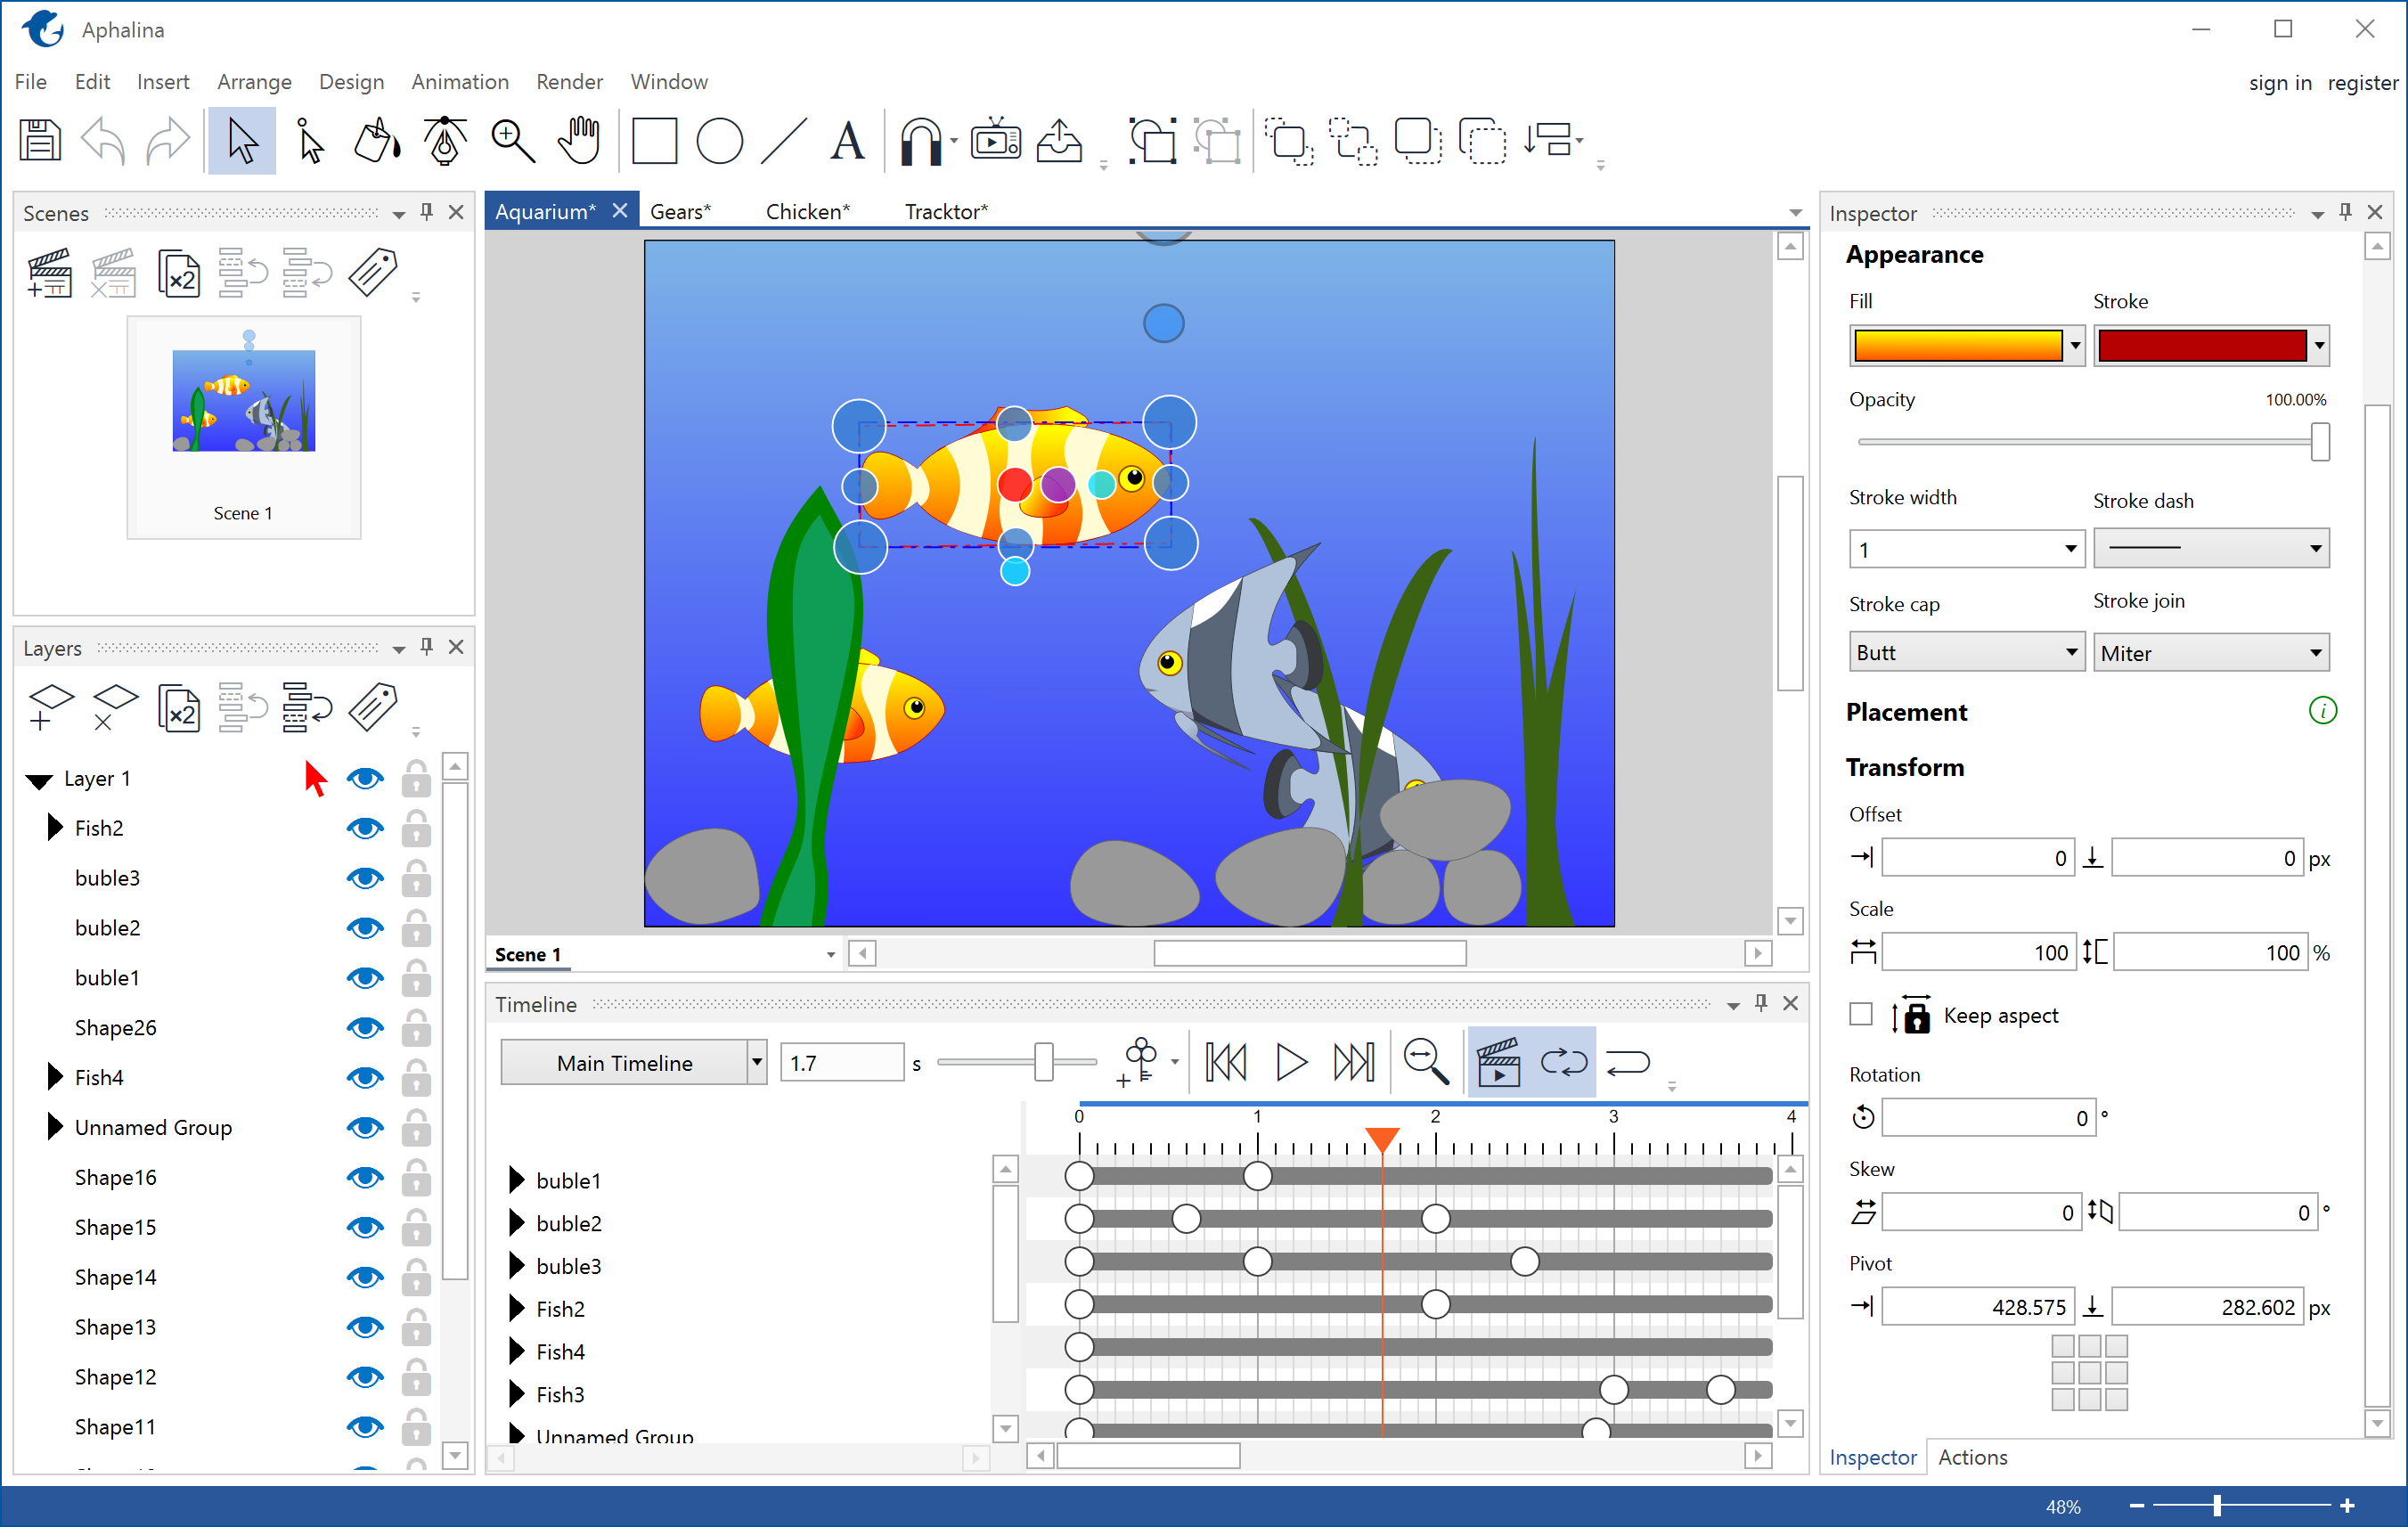 Aphalina Html5/SVG Animation Tool v1.2.1